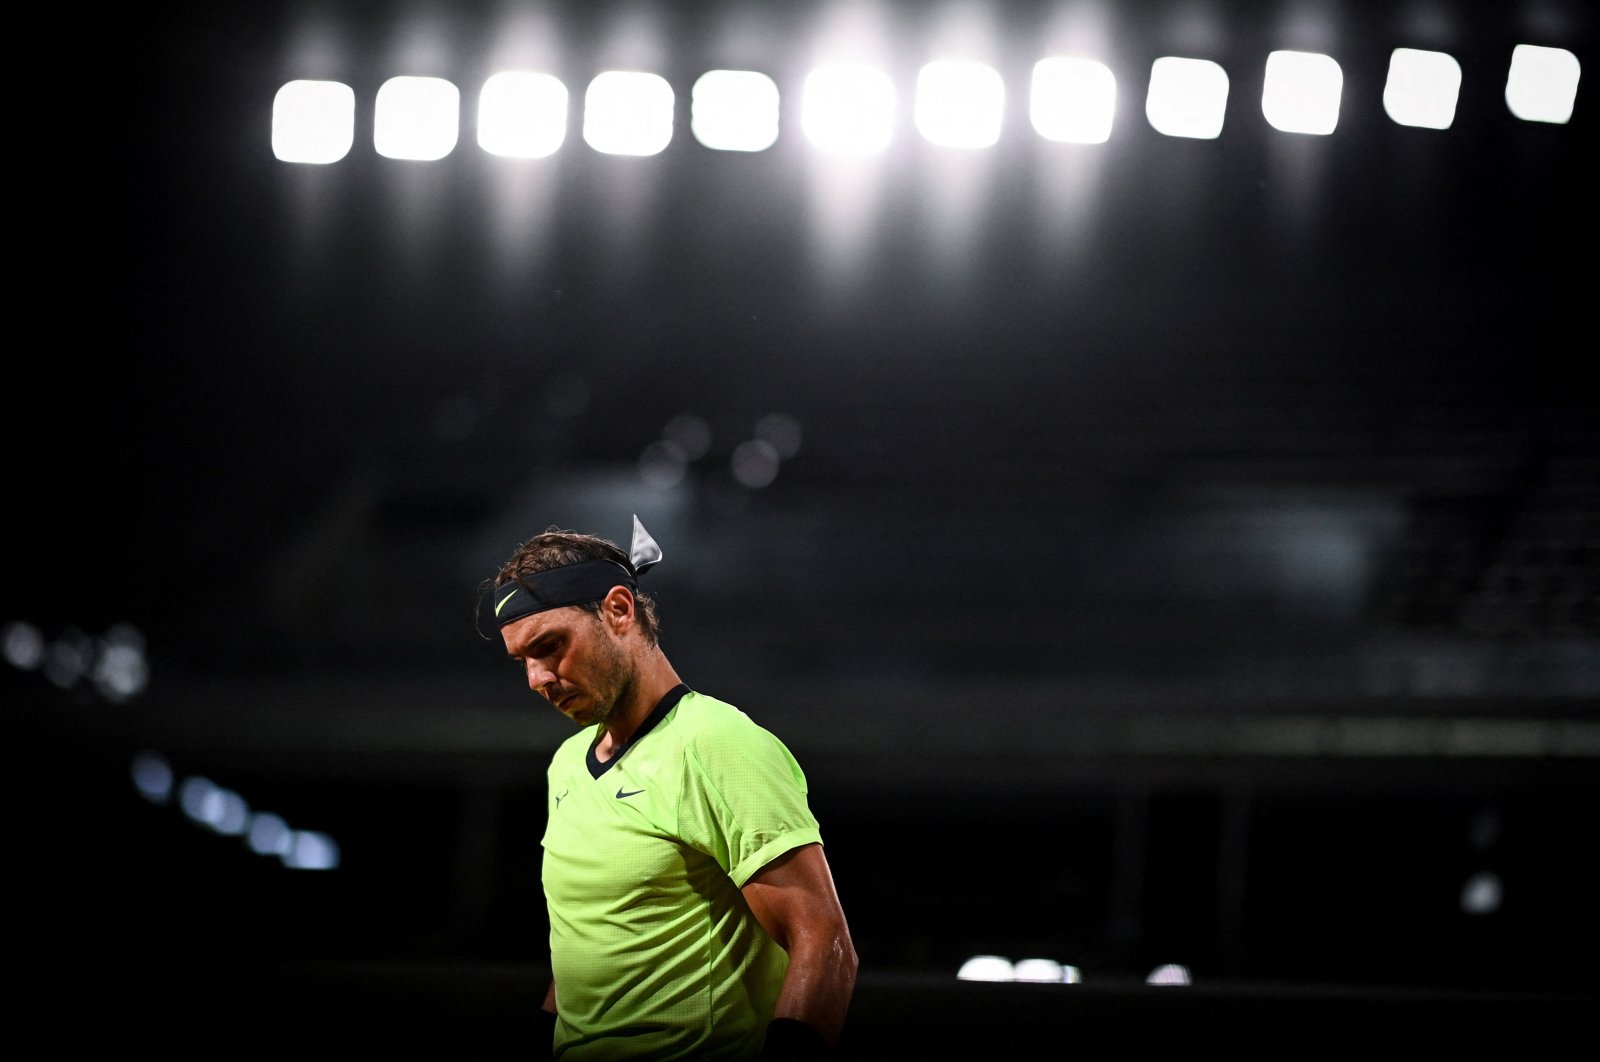 Spain's Rafael Nadal reacts on Day 5 of The Roland Garros 2021 French Open tennis tournament in Paris, France, June 3, 2021. (AFP Photo)